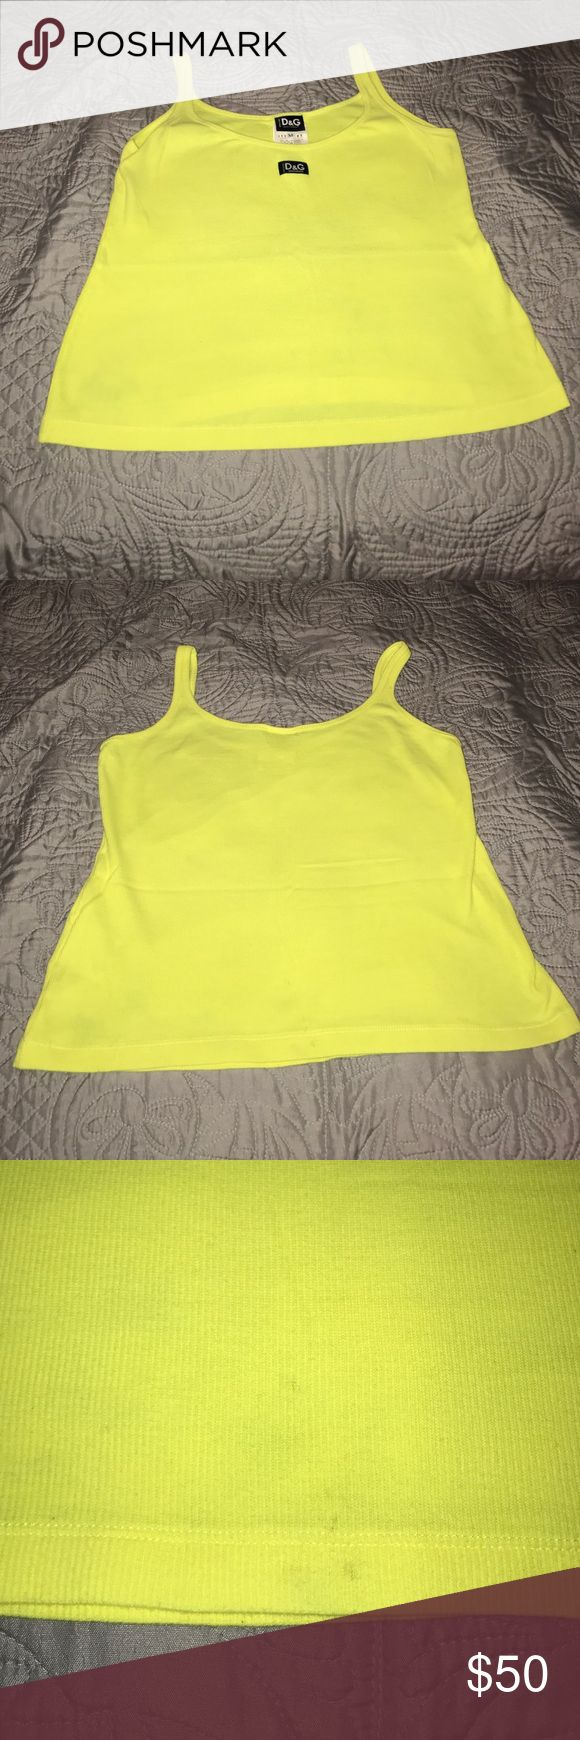 Dolce & Gabbana Neon Yellow Tank Top Good condition. Few marks on the bottom back of the shirt- see pictures. Dolce & Gabbana Tops Tank Tops